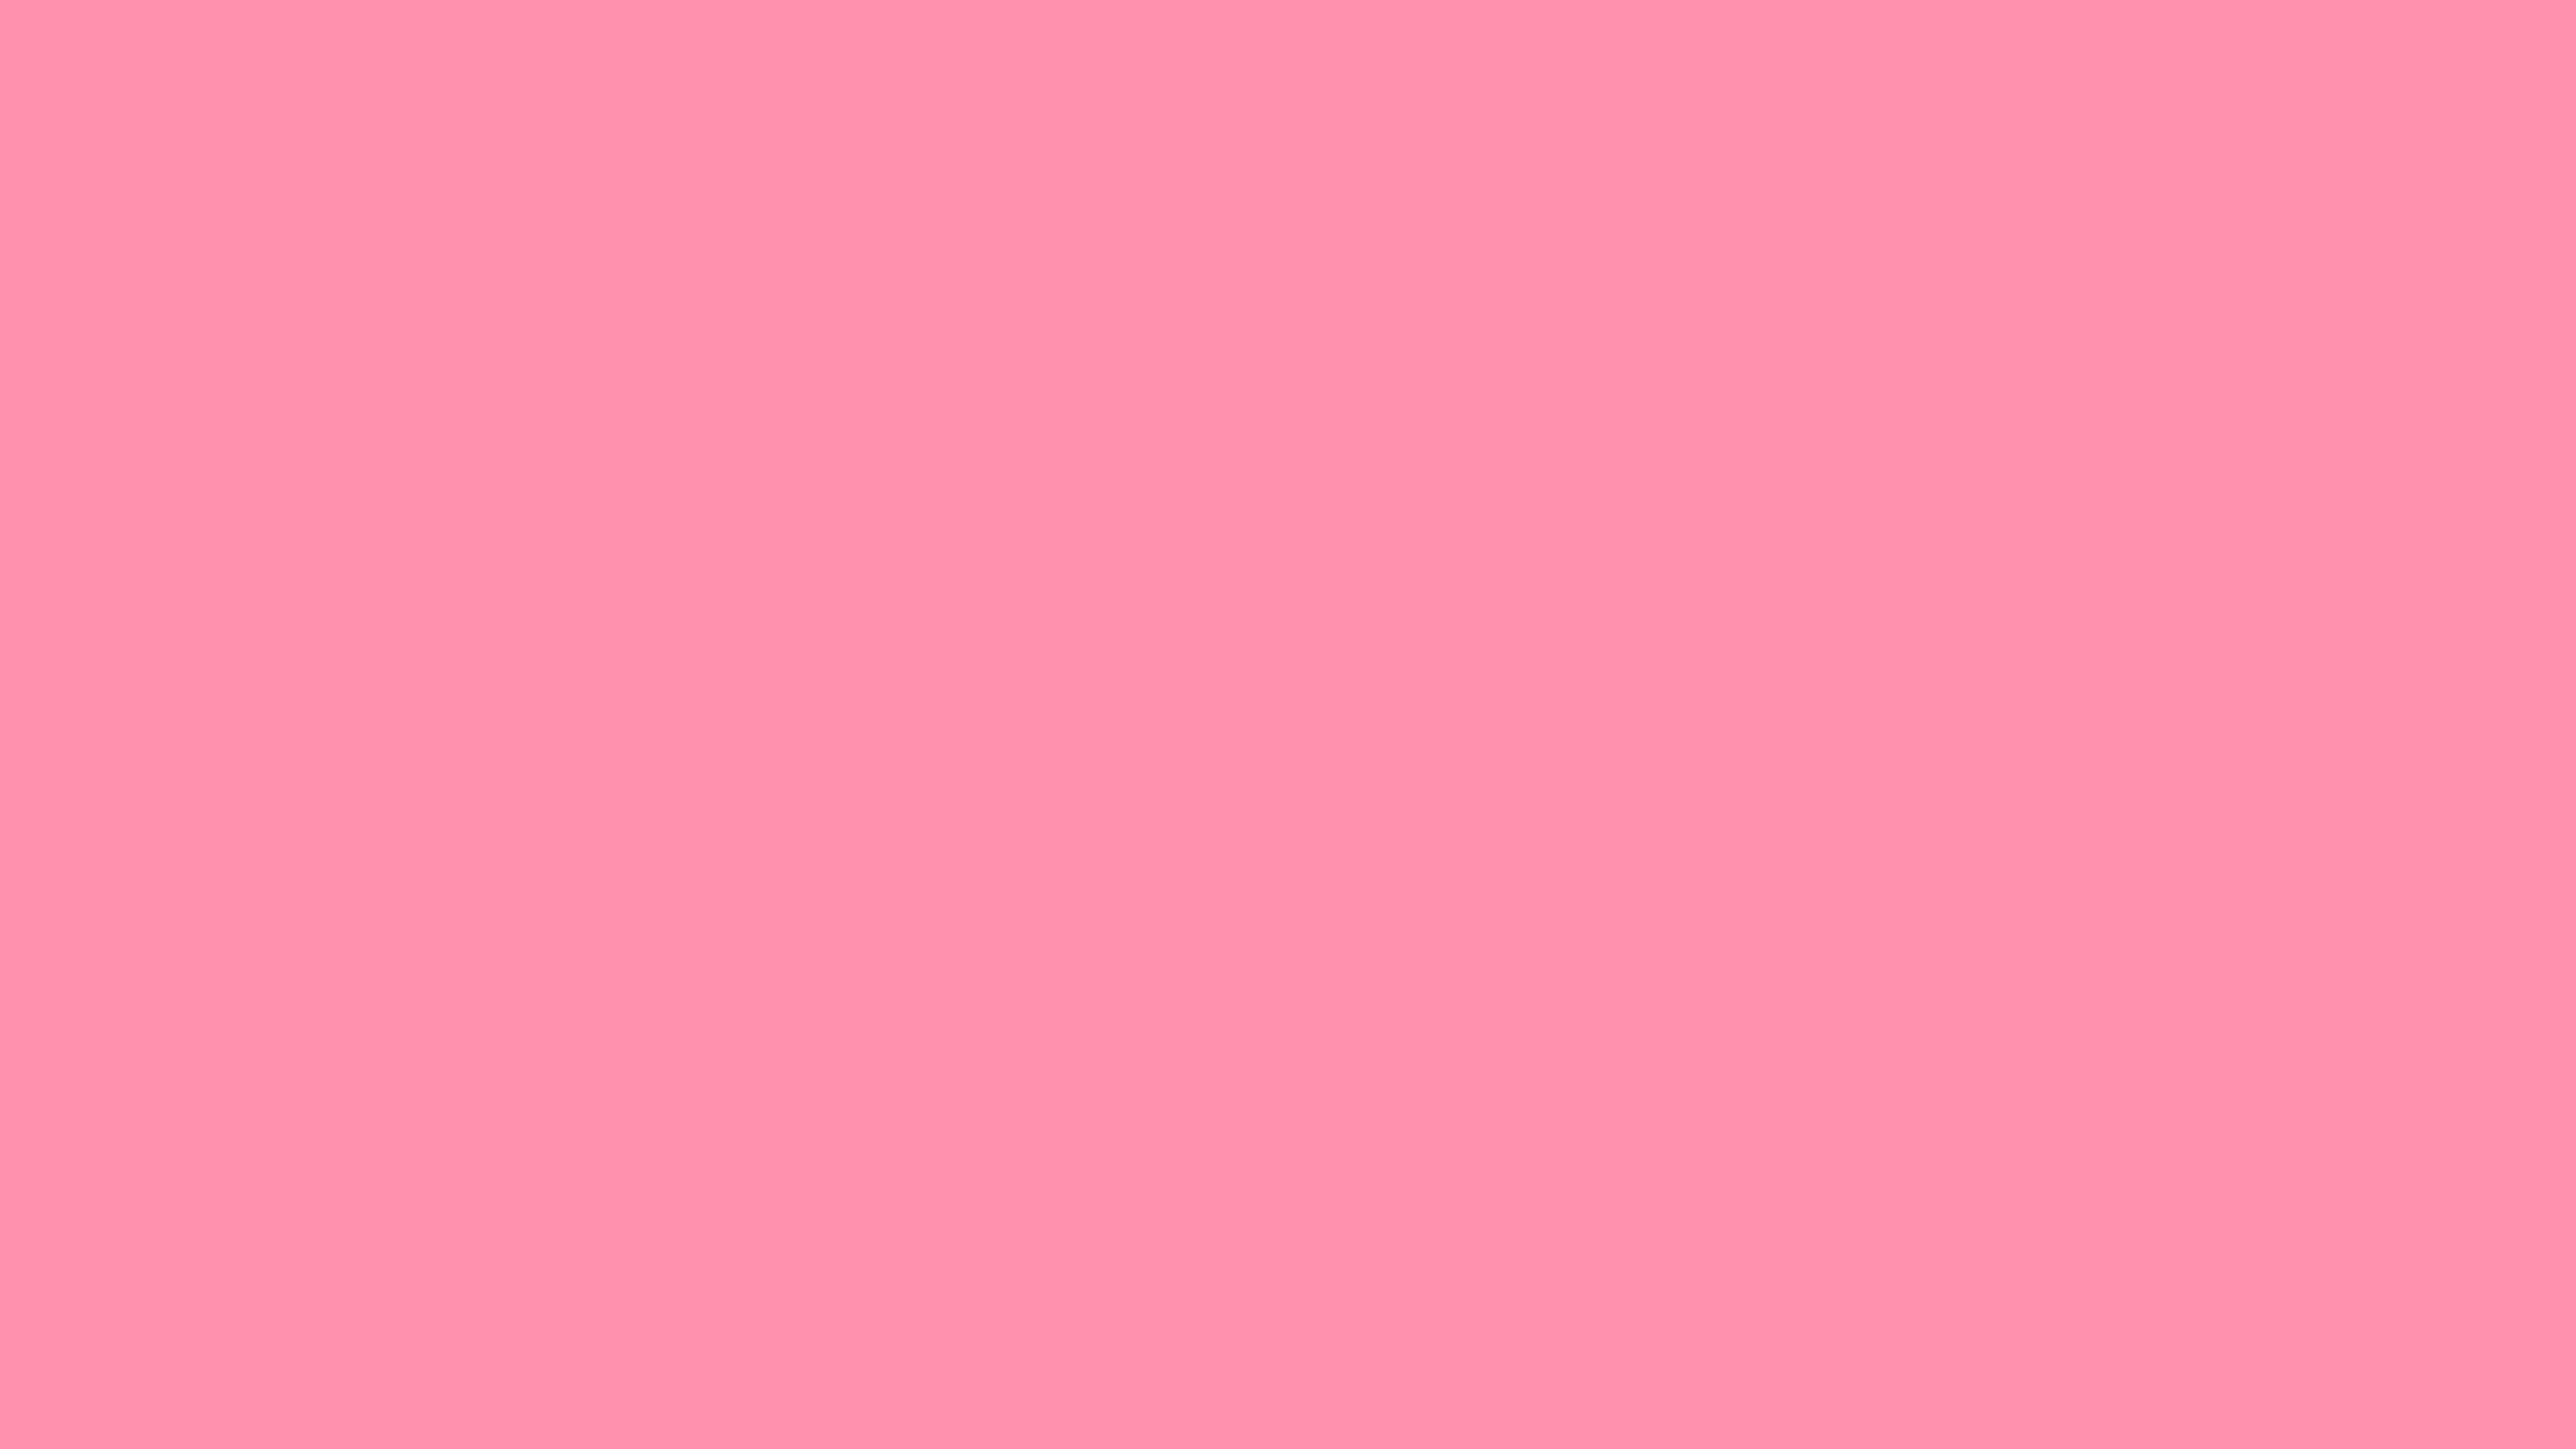 3840x2160 Schauss Pink Solid Color Background